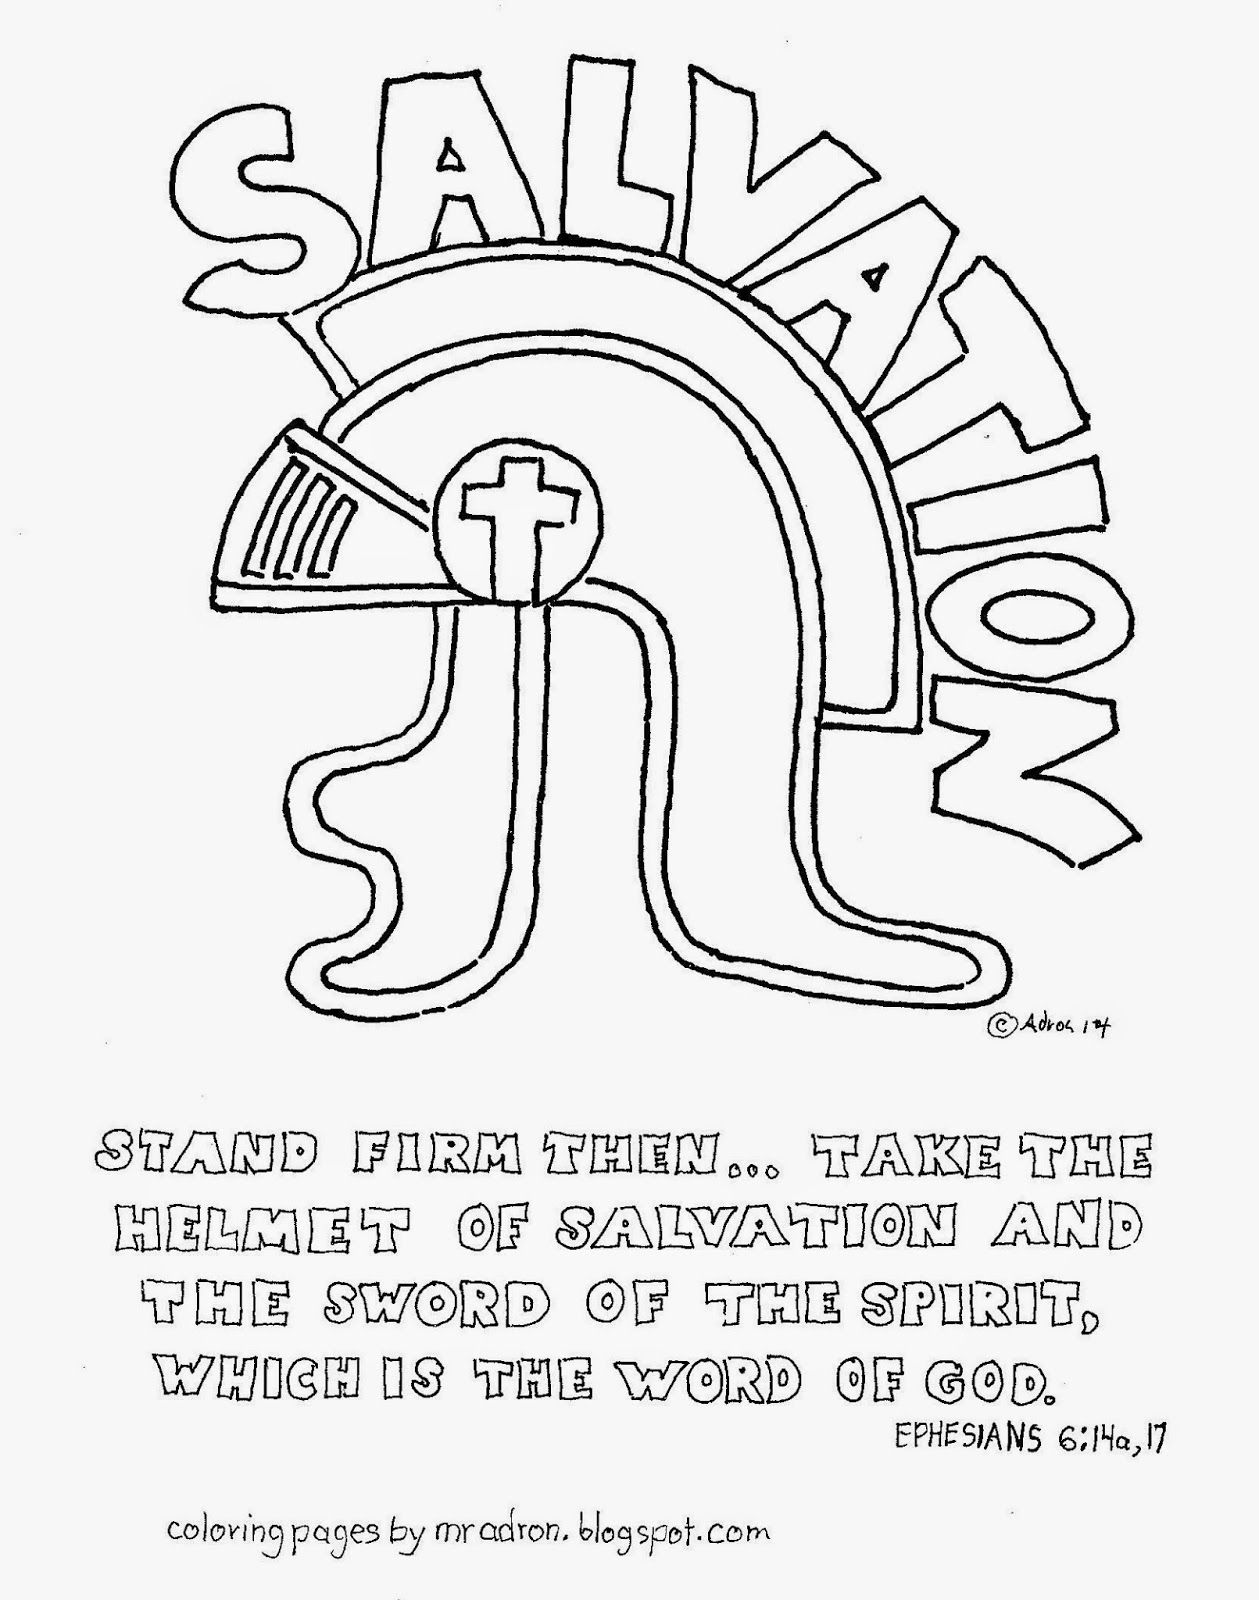 Coloring Pages For Kids By Mr Adron The Helmet Of Salvation Free Coloring Page Ephesia